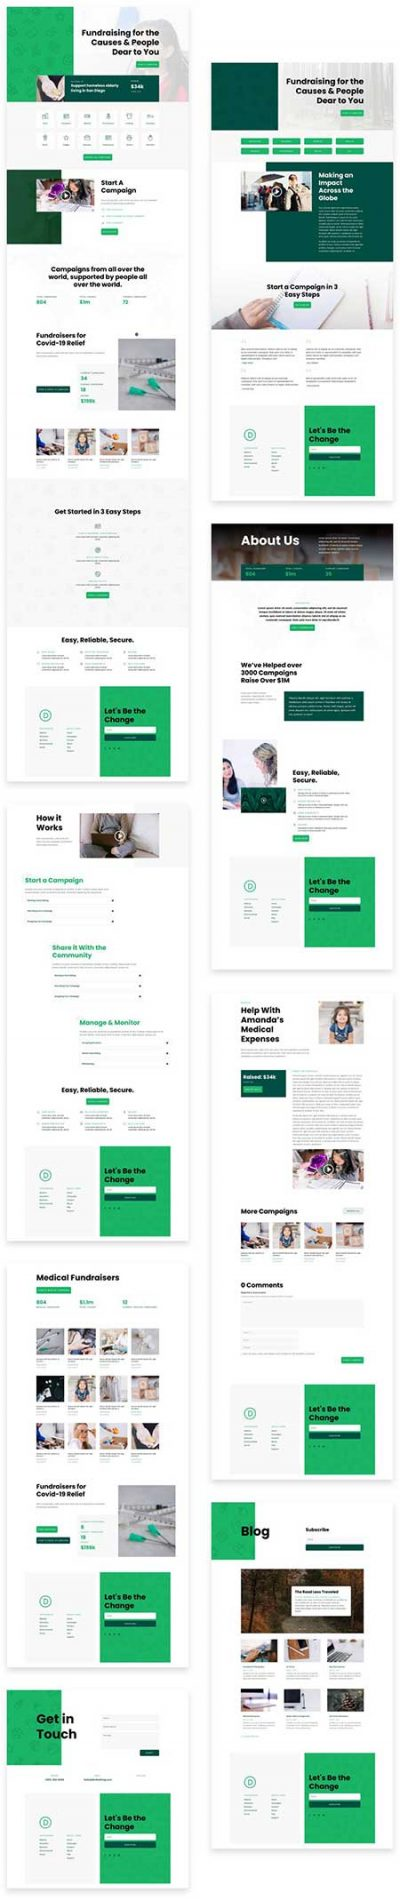 Divi crowdfunding layout